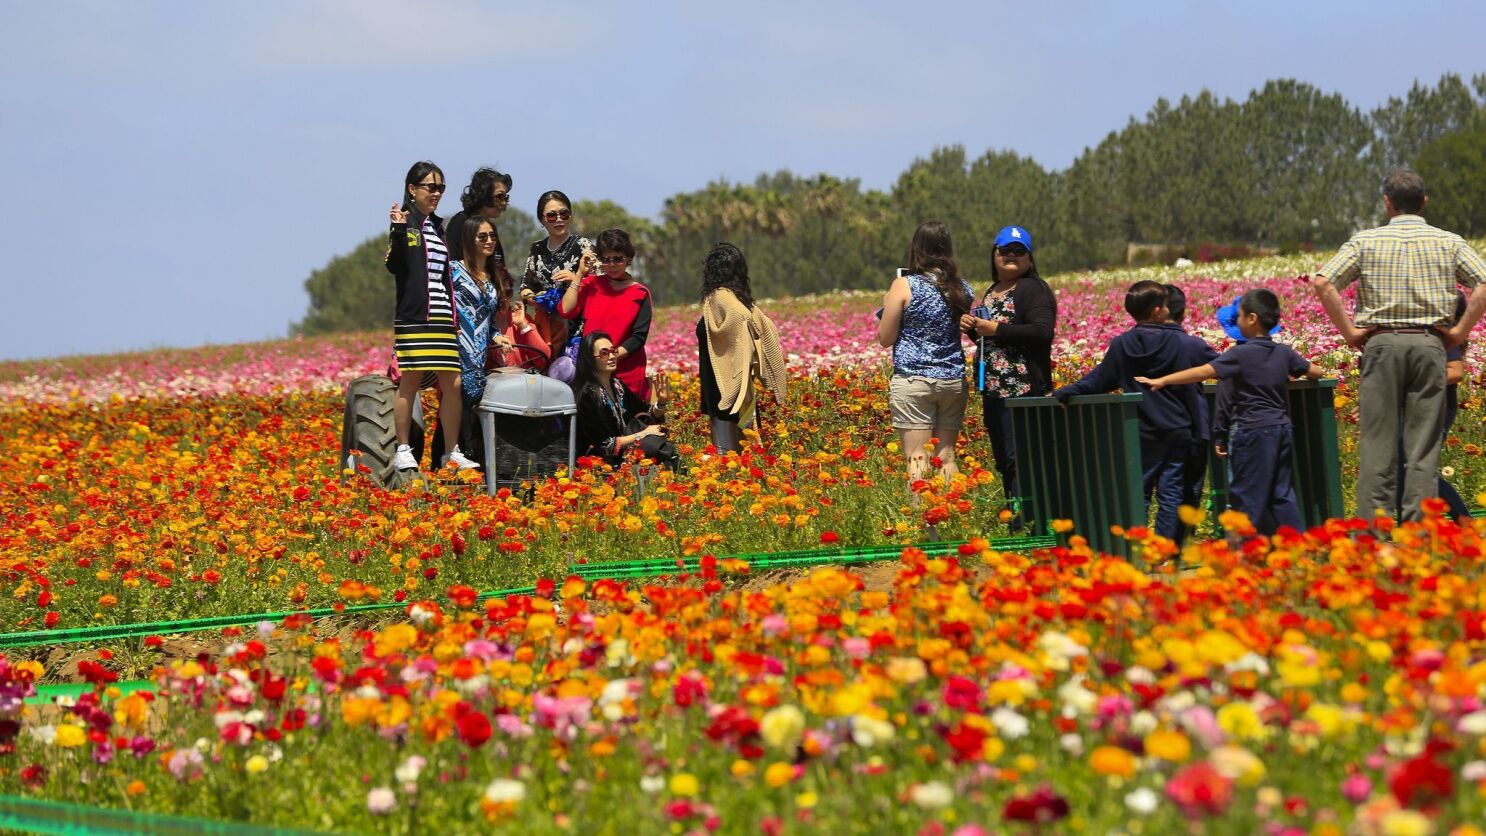 5 Things You Need To Know About The Flower Fields In Carlsbad